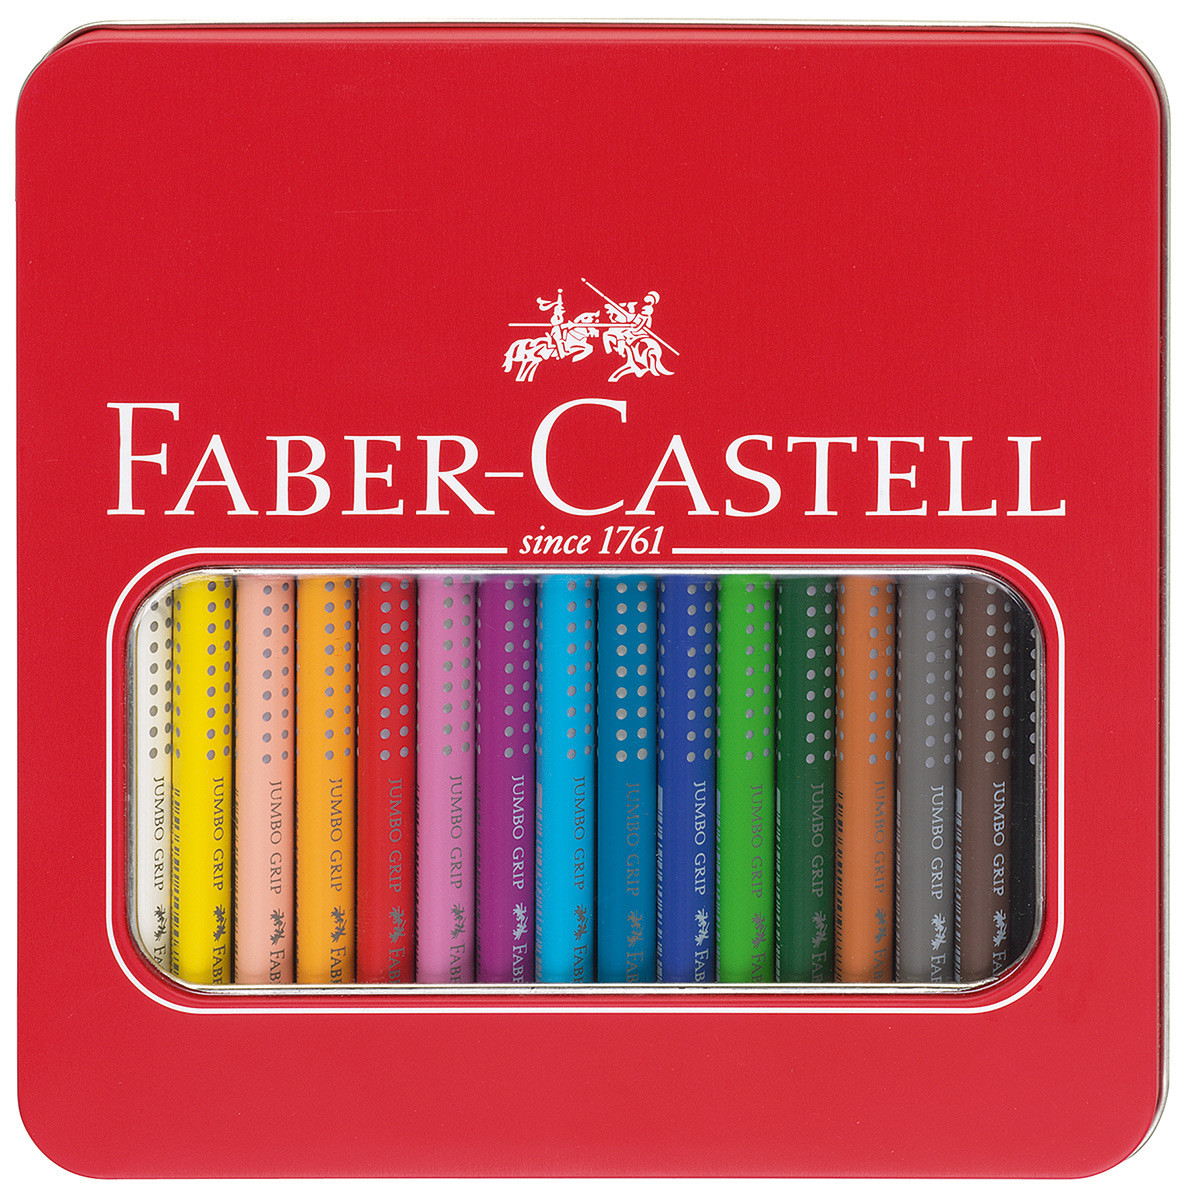 Faber-Castell Jumbo Grip Colouring Pencils - Assorted Colours (Tin of 16)